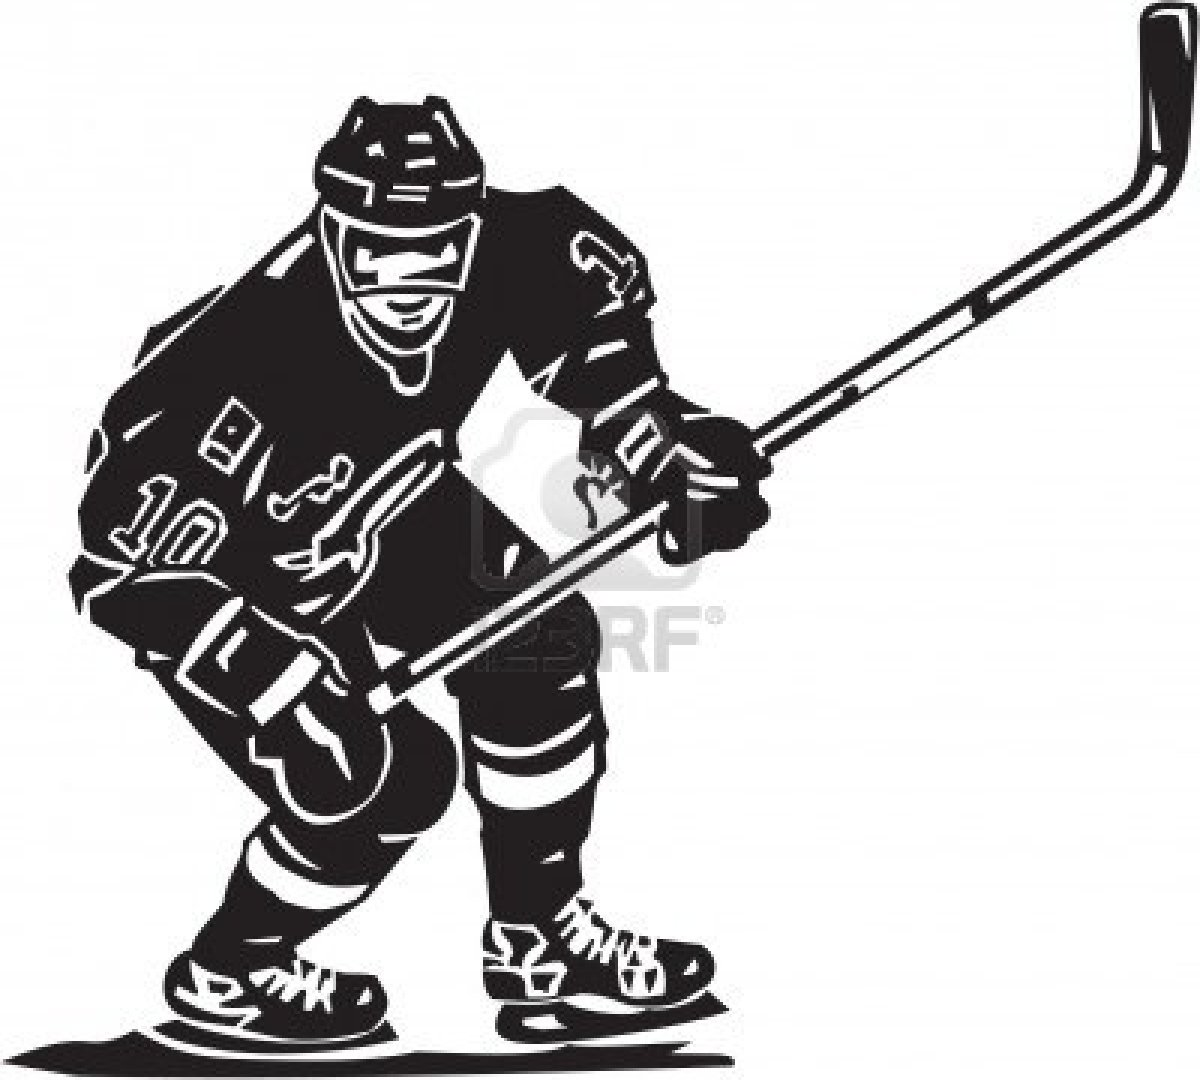 Black and white drawing of the hockey player clipart free image.